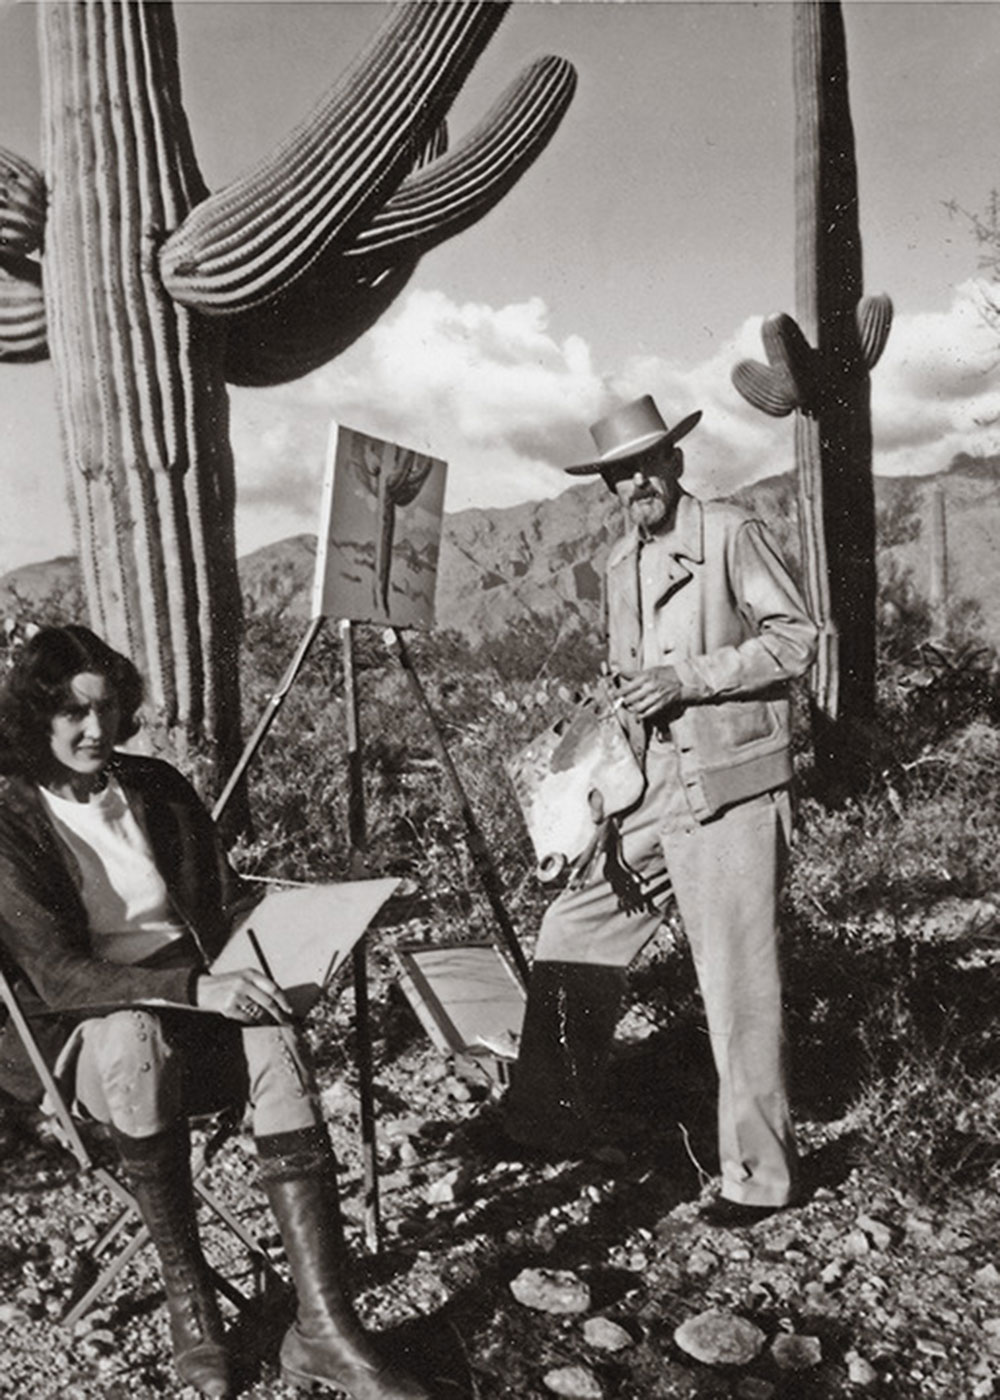 Edith Hamlin and Maynard Dixon true west magazine